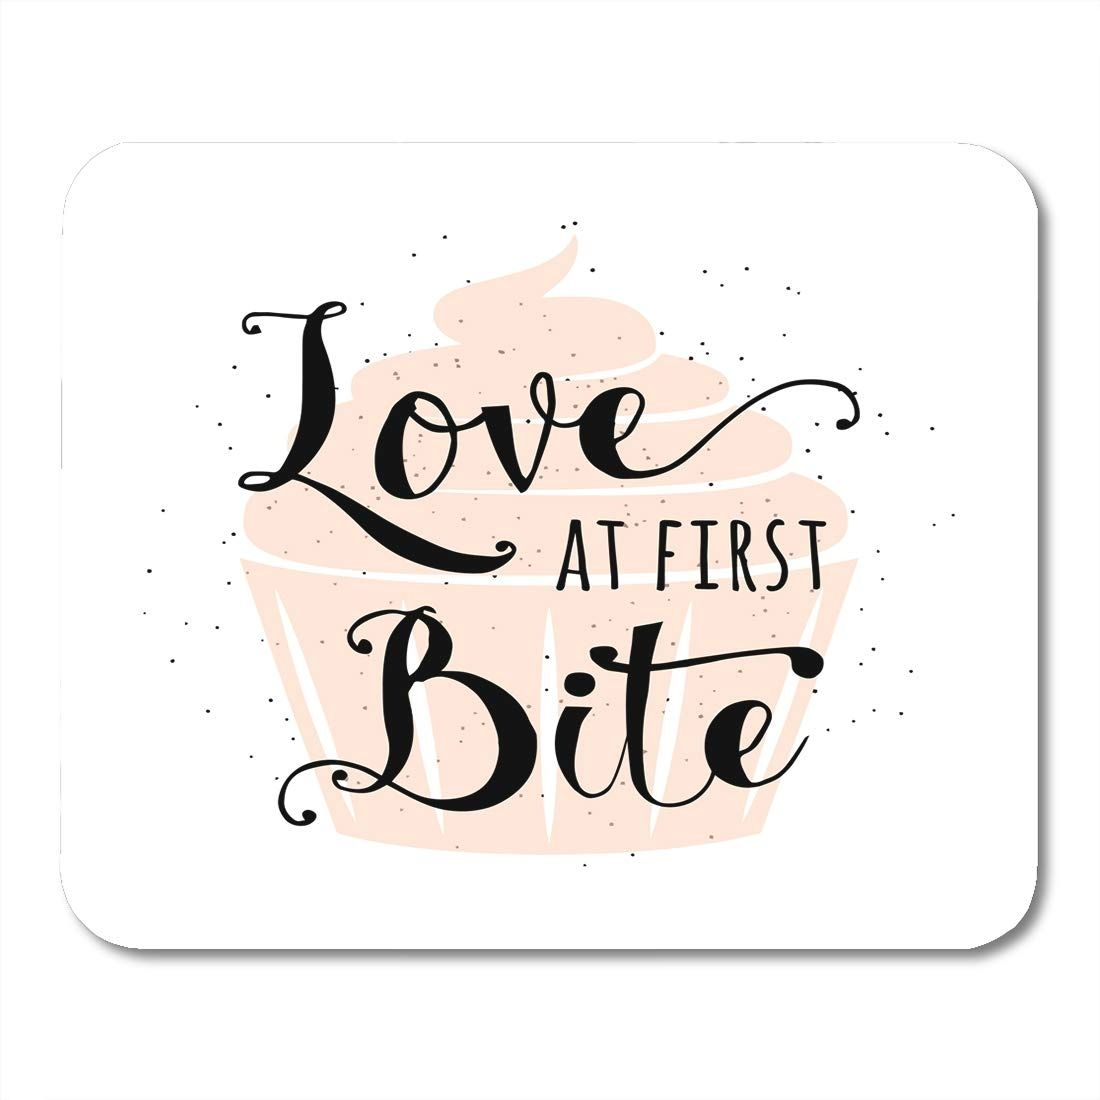 Food Related Quote Cupcake Lettering Text Sign Slogan Love at First Bite Fun Bakery Placard Creative Mousepad Mouse Pad Mouse Mat 9x10 inch